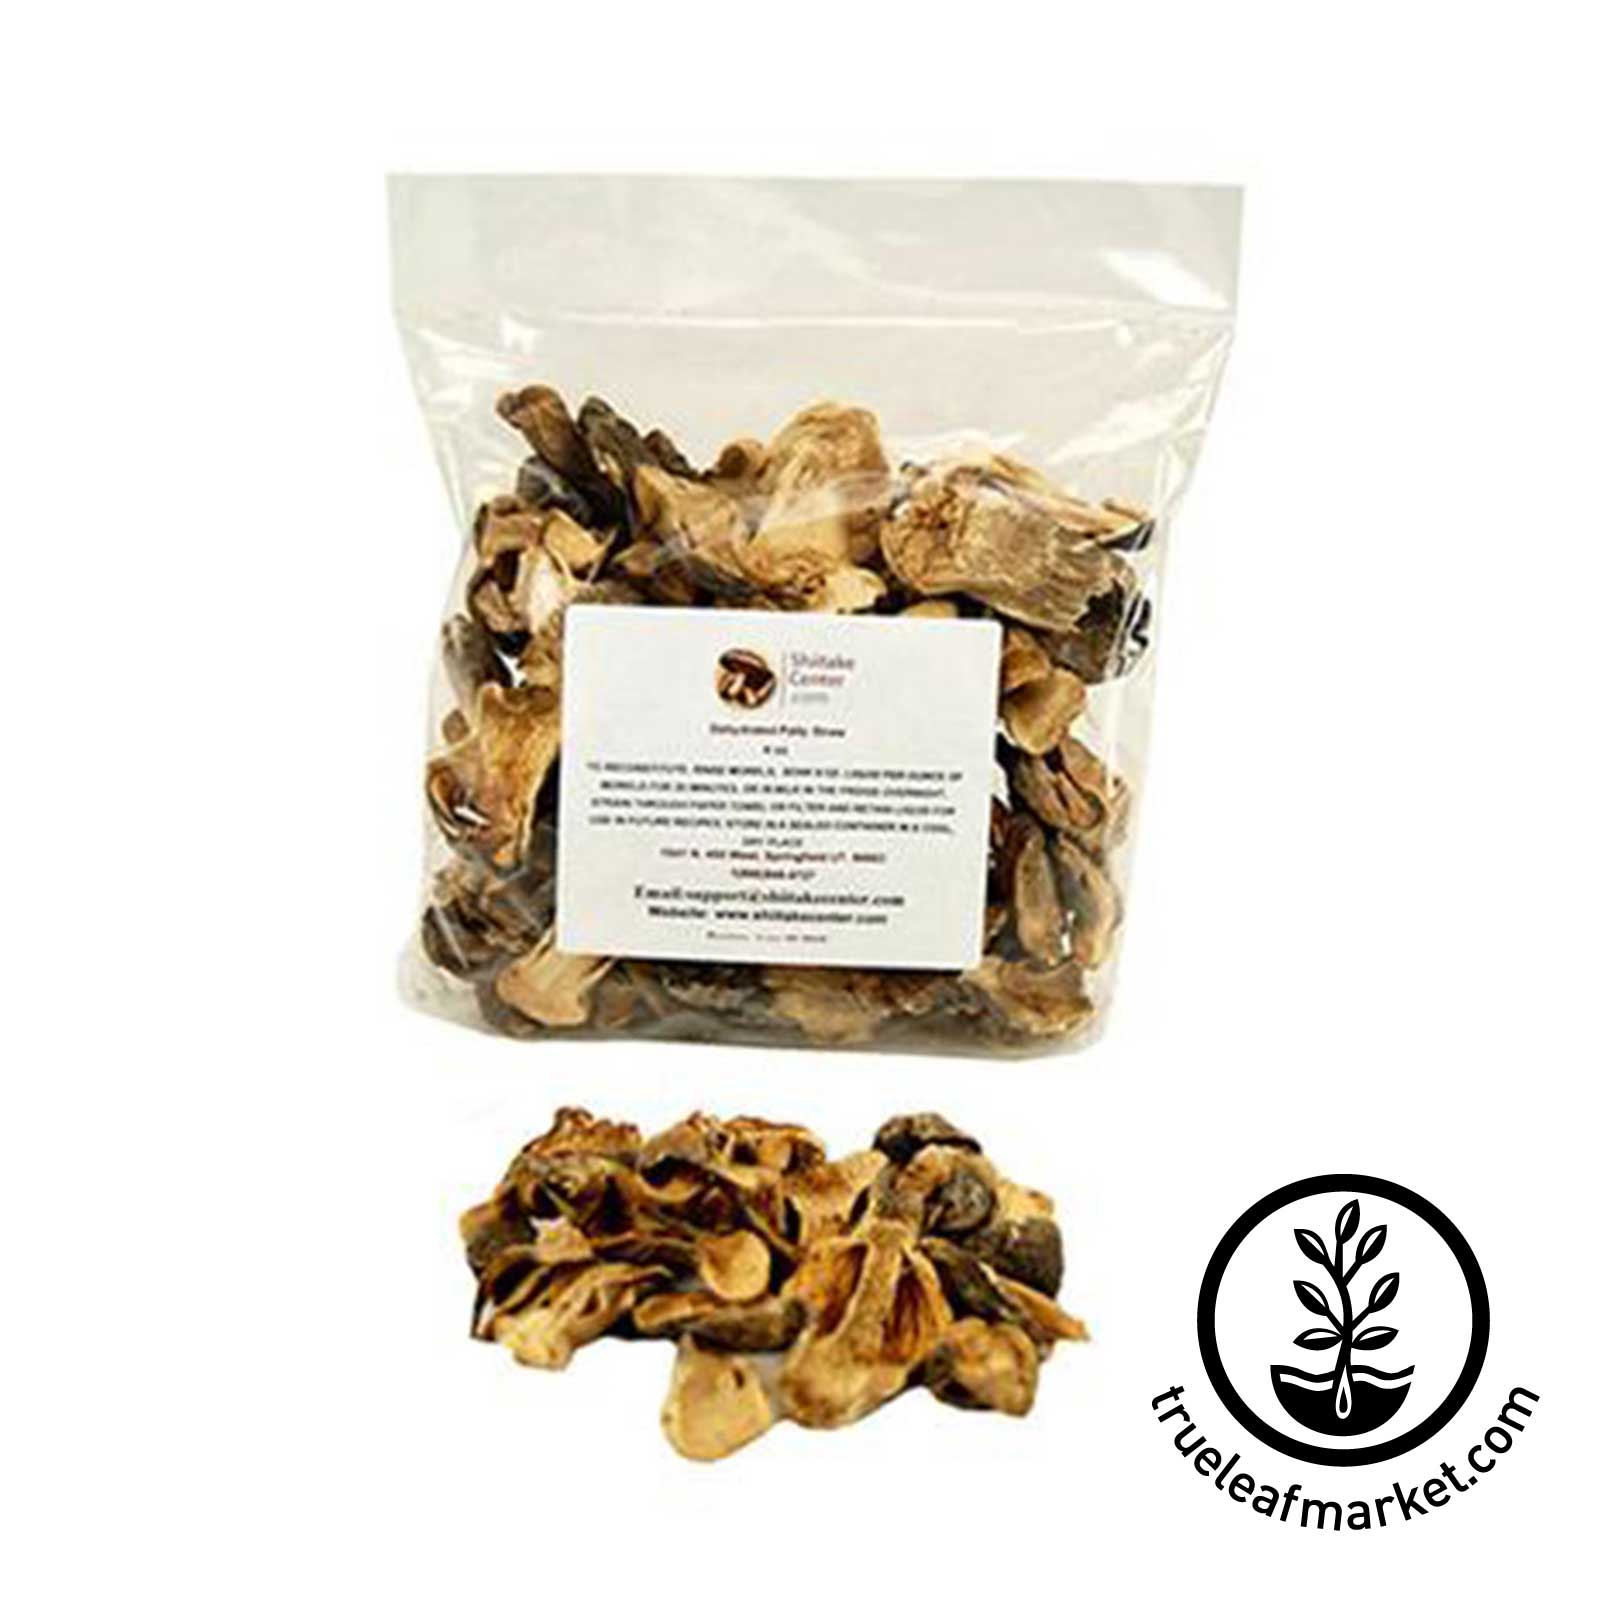 Paddy Straw Mushrooms 4oz